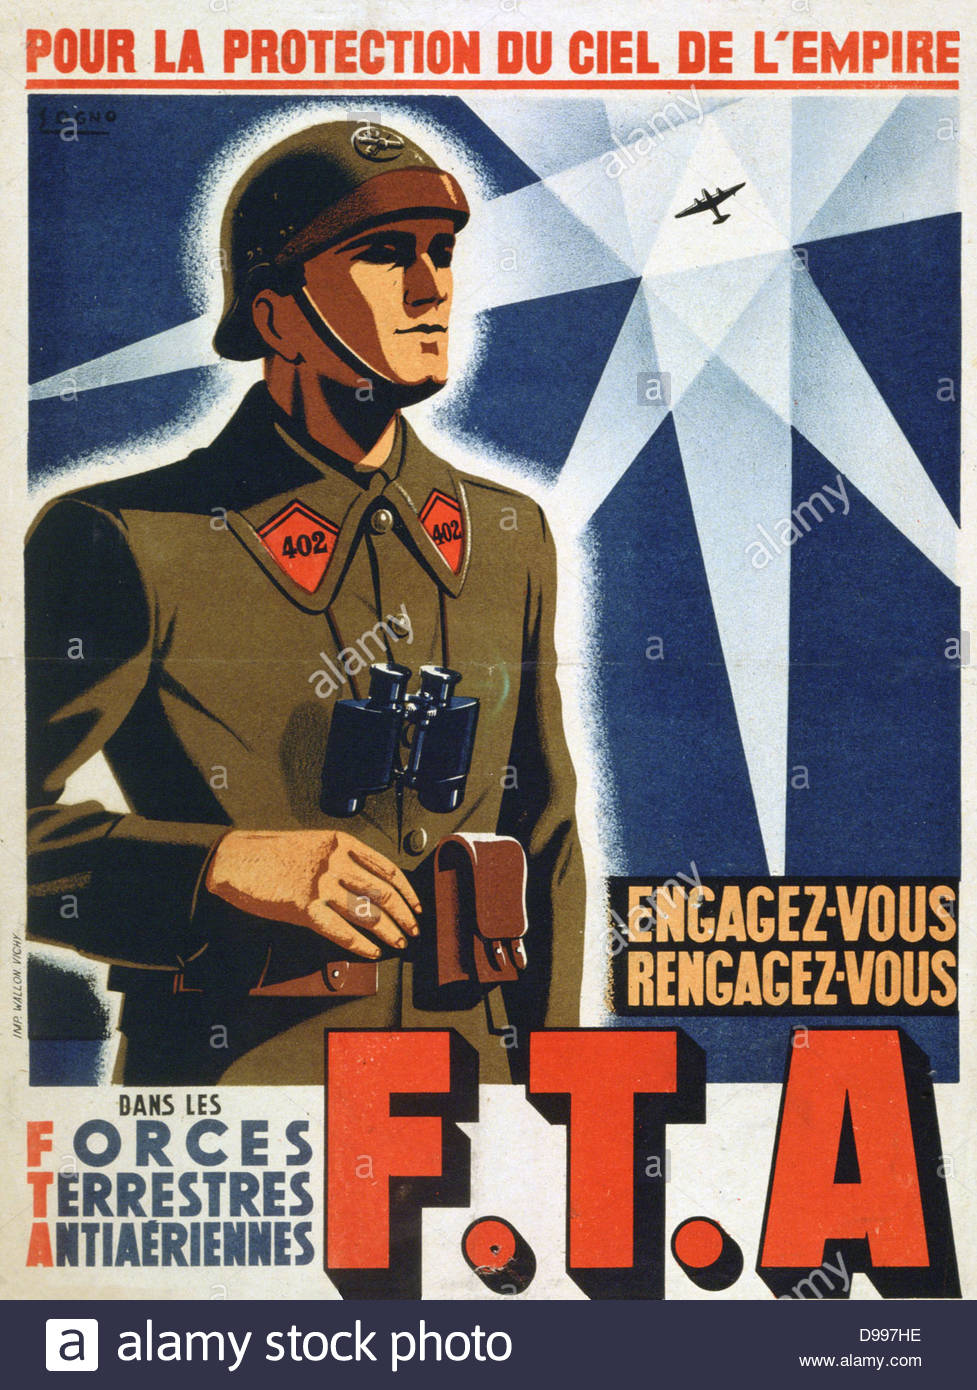 World War II 1939-1945: Recruiting poster for the Forces Terrestres Antiaeriennes,  a French anti-aircraft artillery - Stock Image